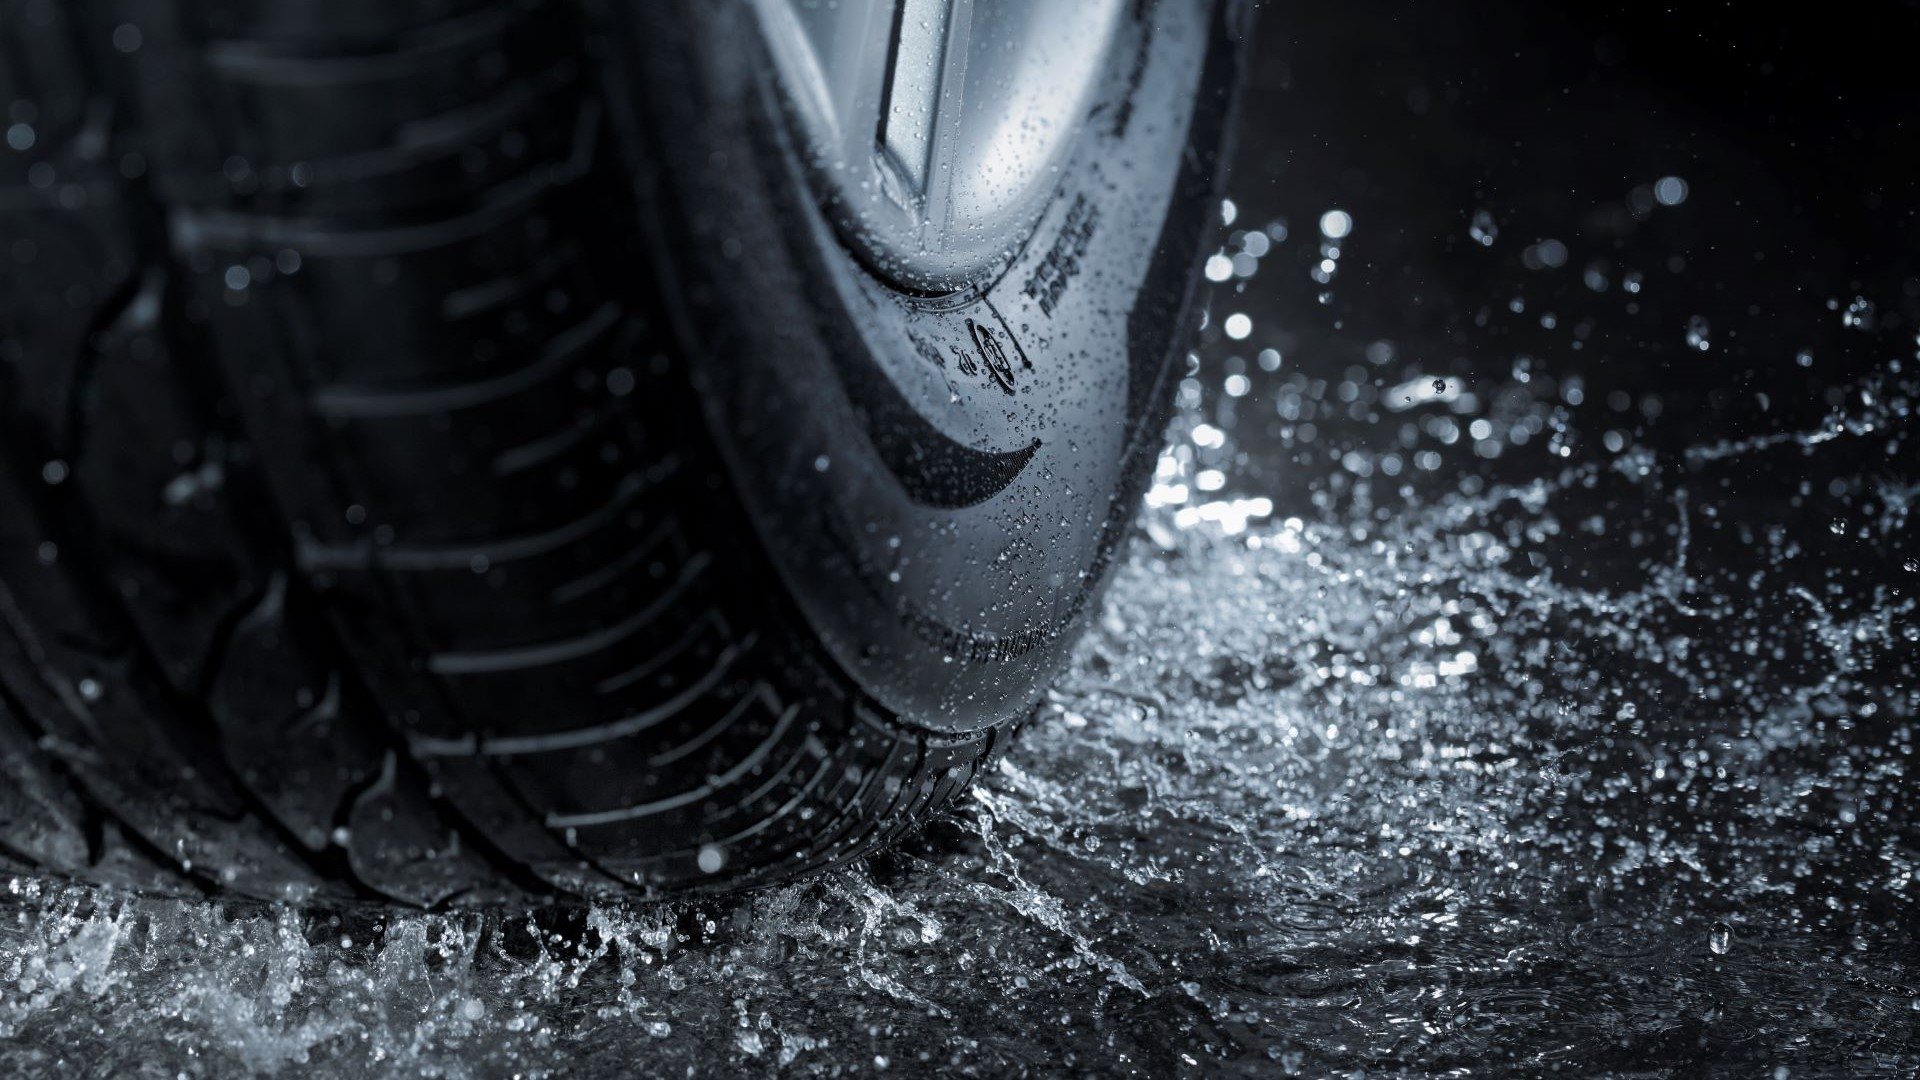 A detailed view of a tire's tread and sidewall as it splashes through water.